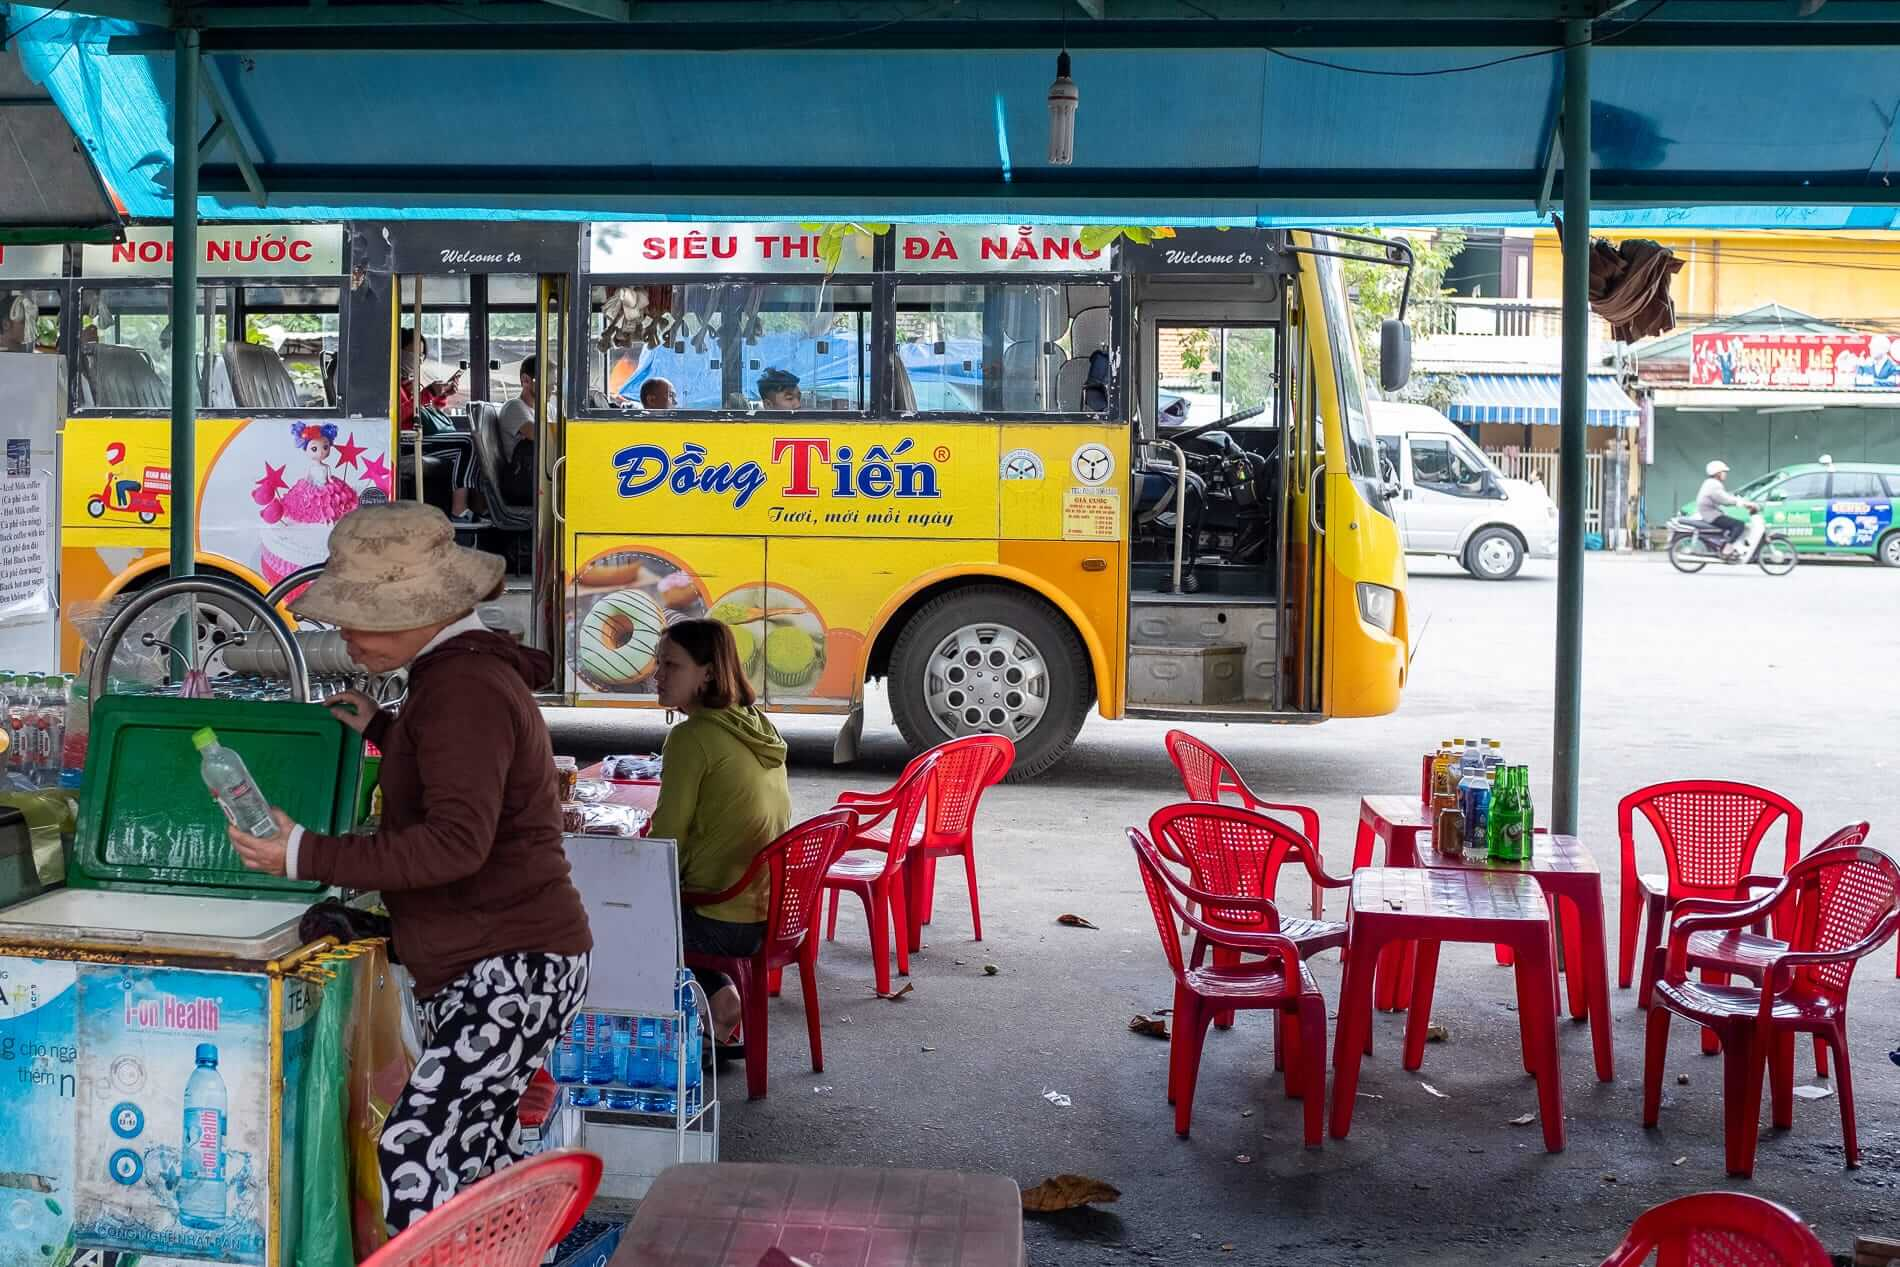 Hoi An's bus station